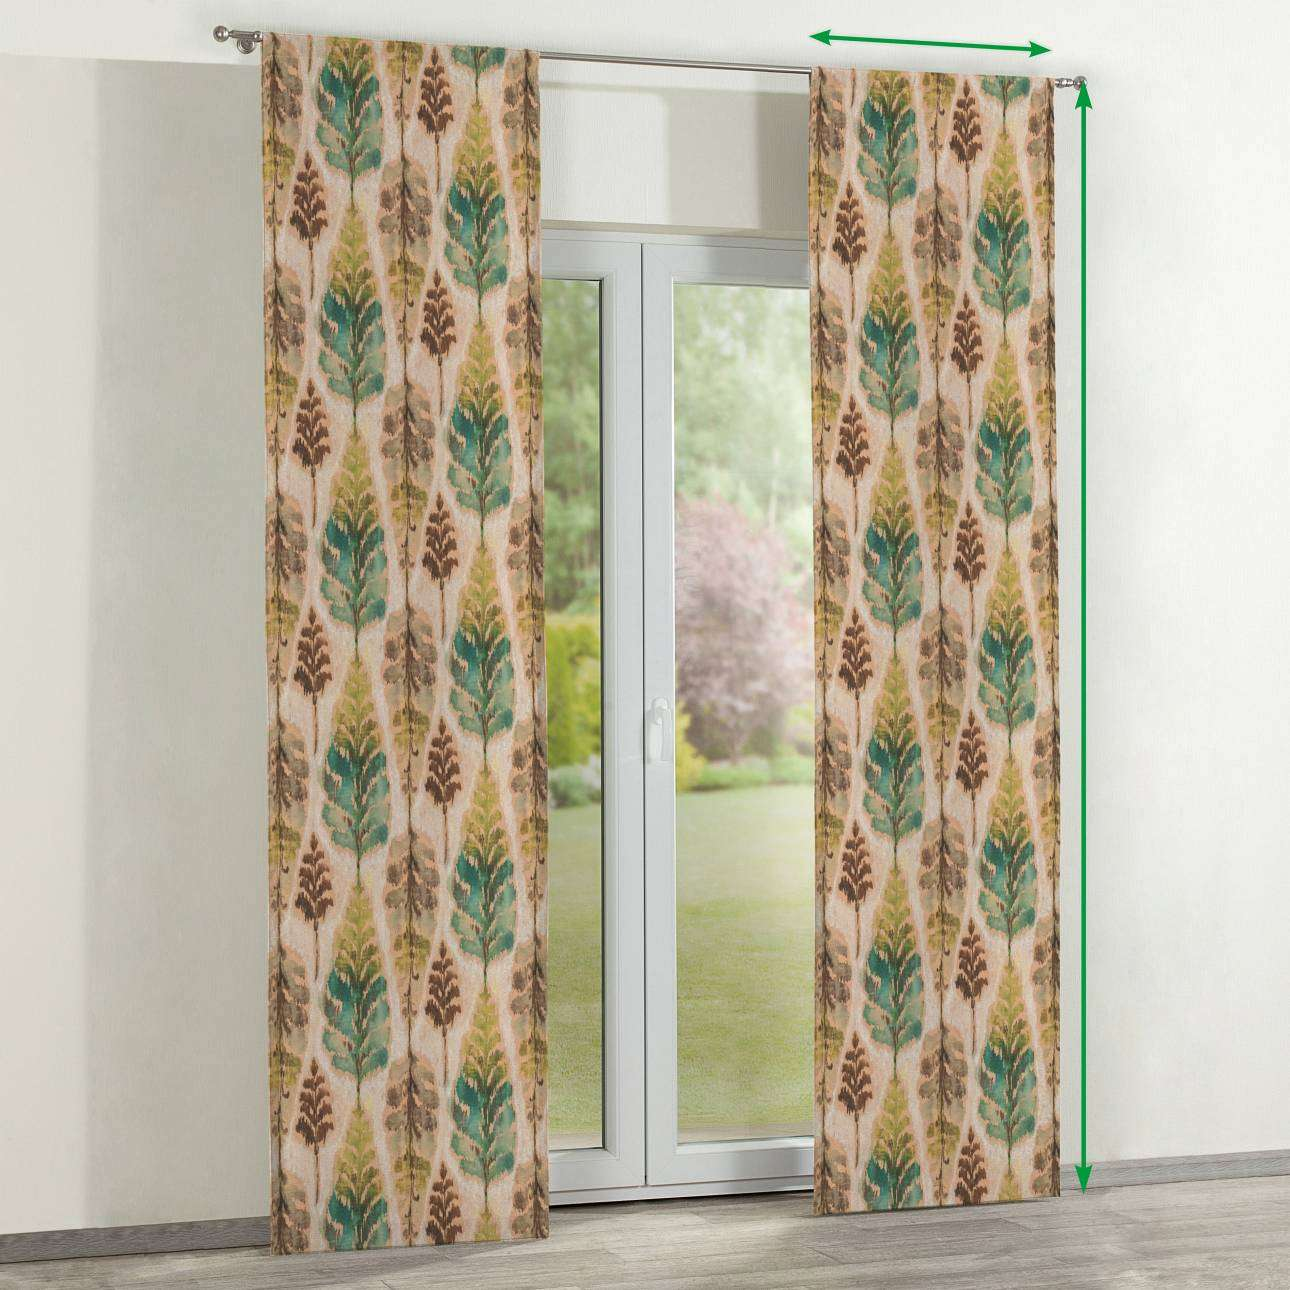 Slot panel curtains – Set of 2 in collection Urban Jungle, fabric: 141-60